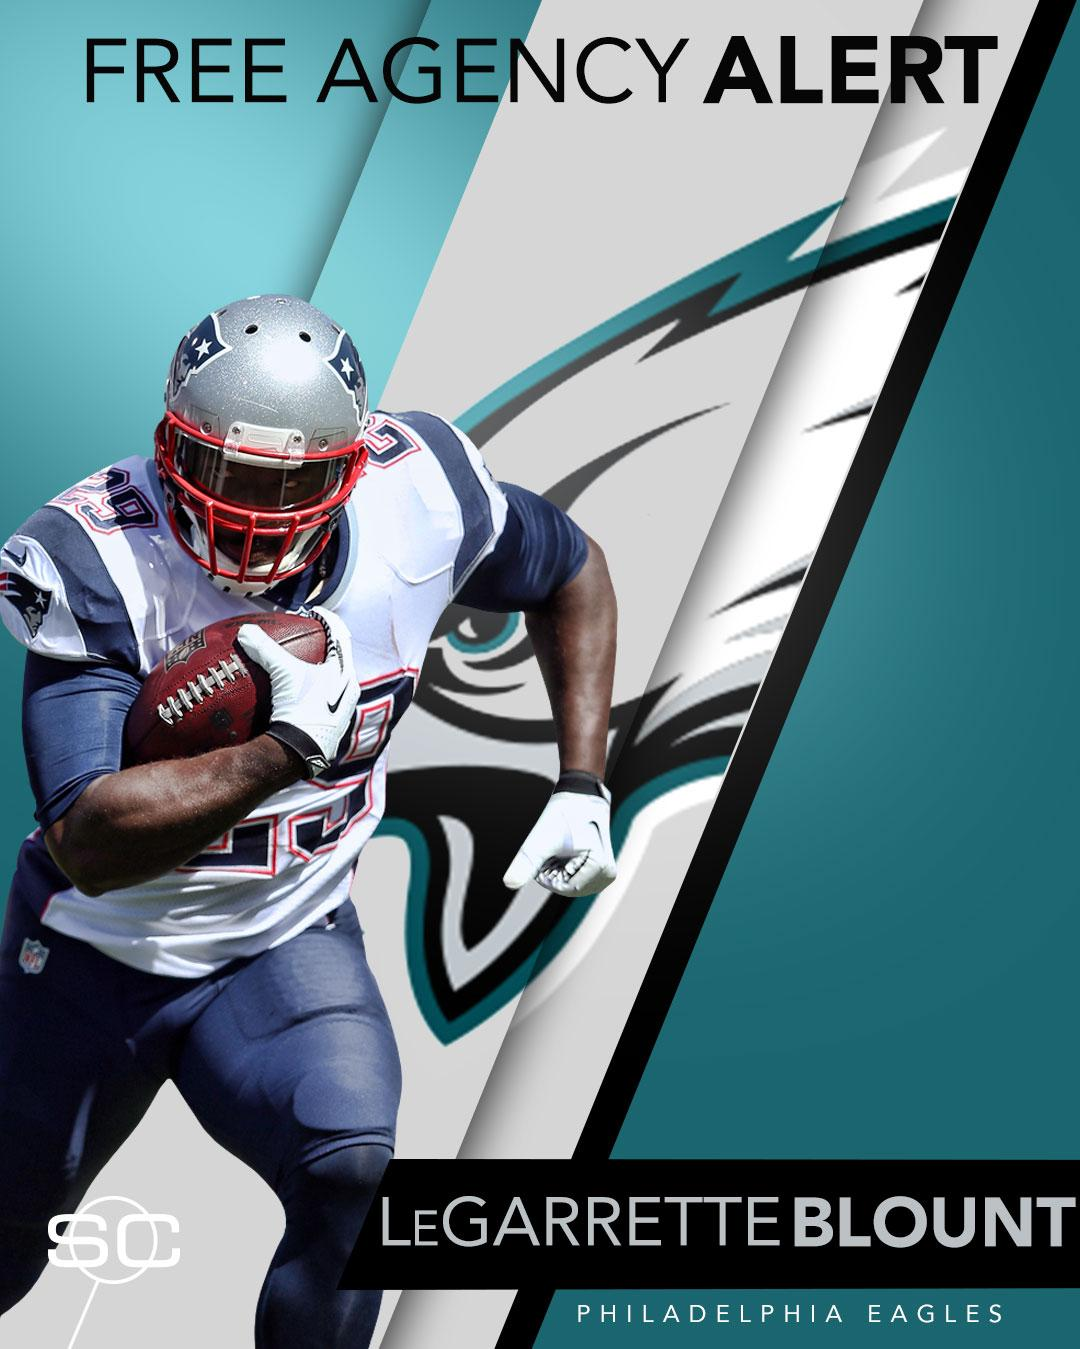 Breaking: The Eagles will sign LeGarrette Blount to a one-year deal. (via @AdamSchefter) https://t.co/T1gRxWqkuM